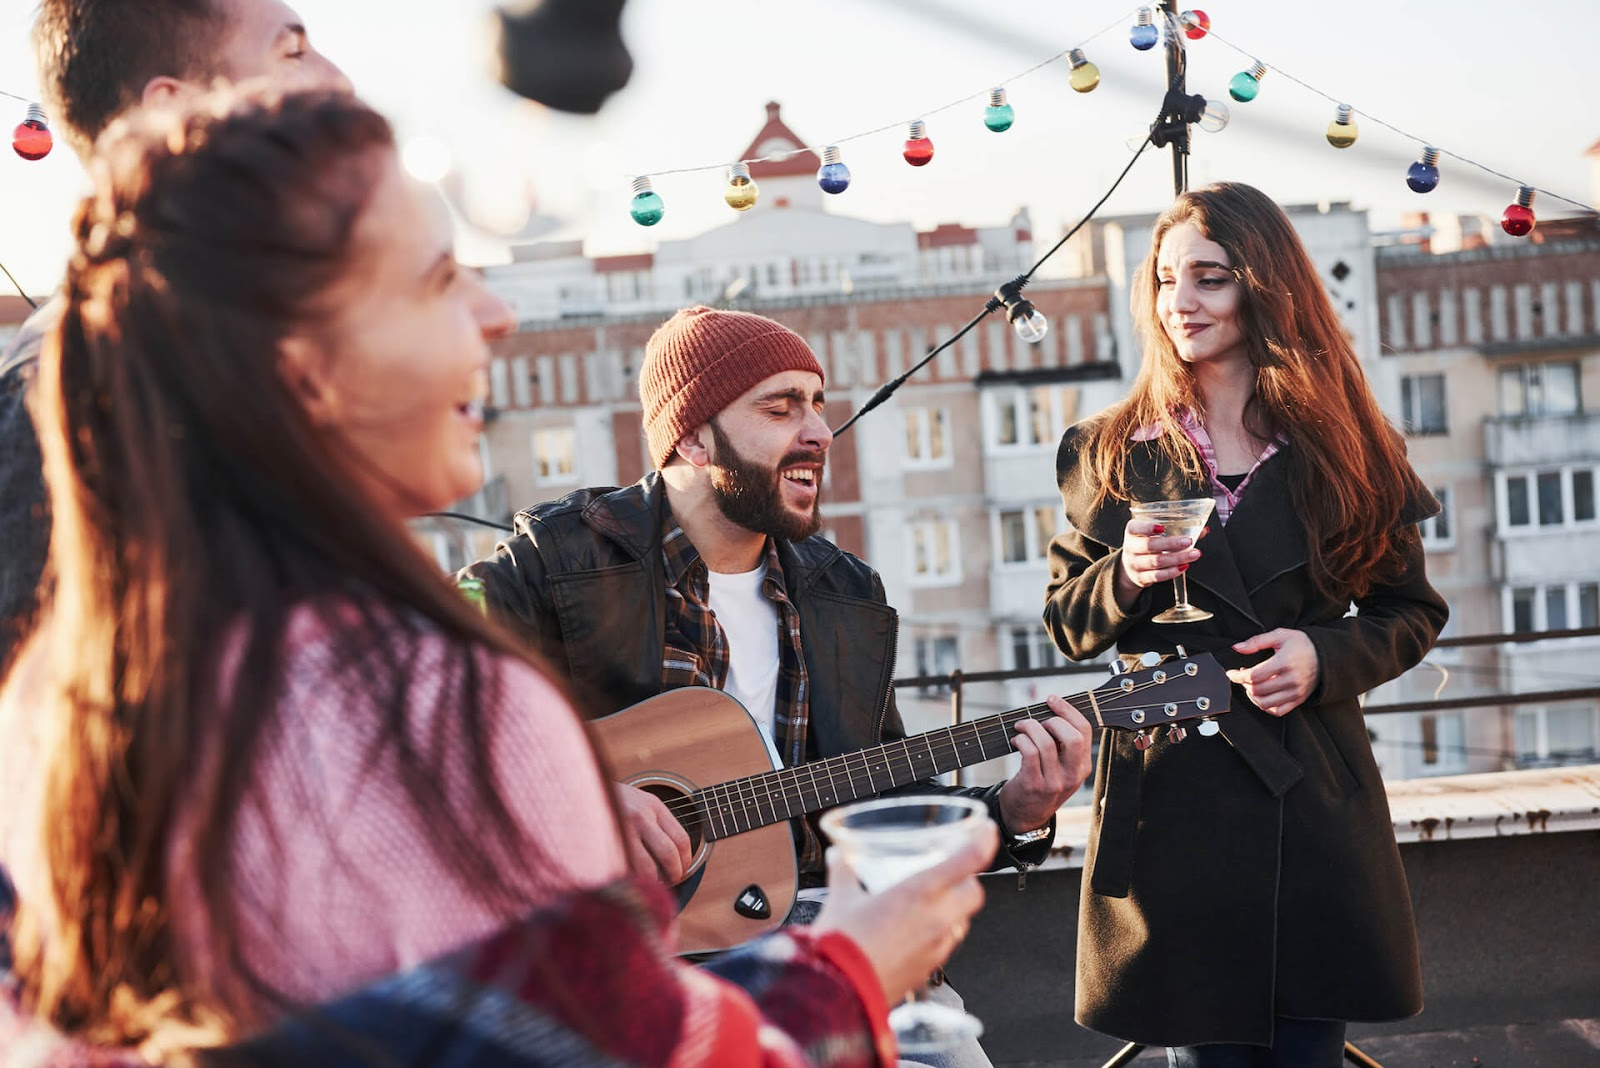 Friends playing music on a rooftop